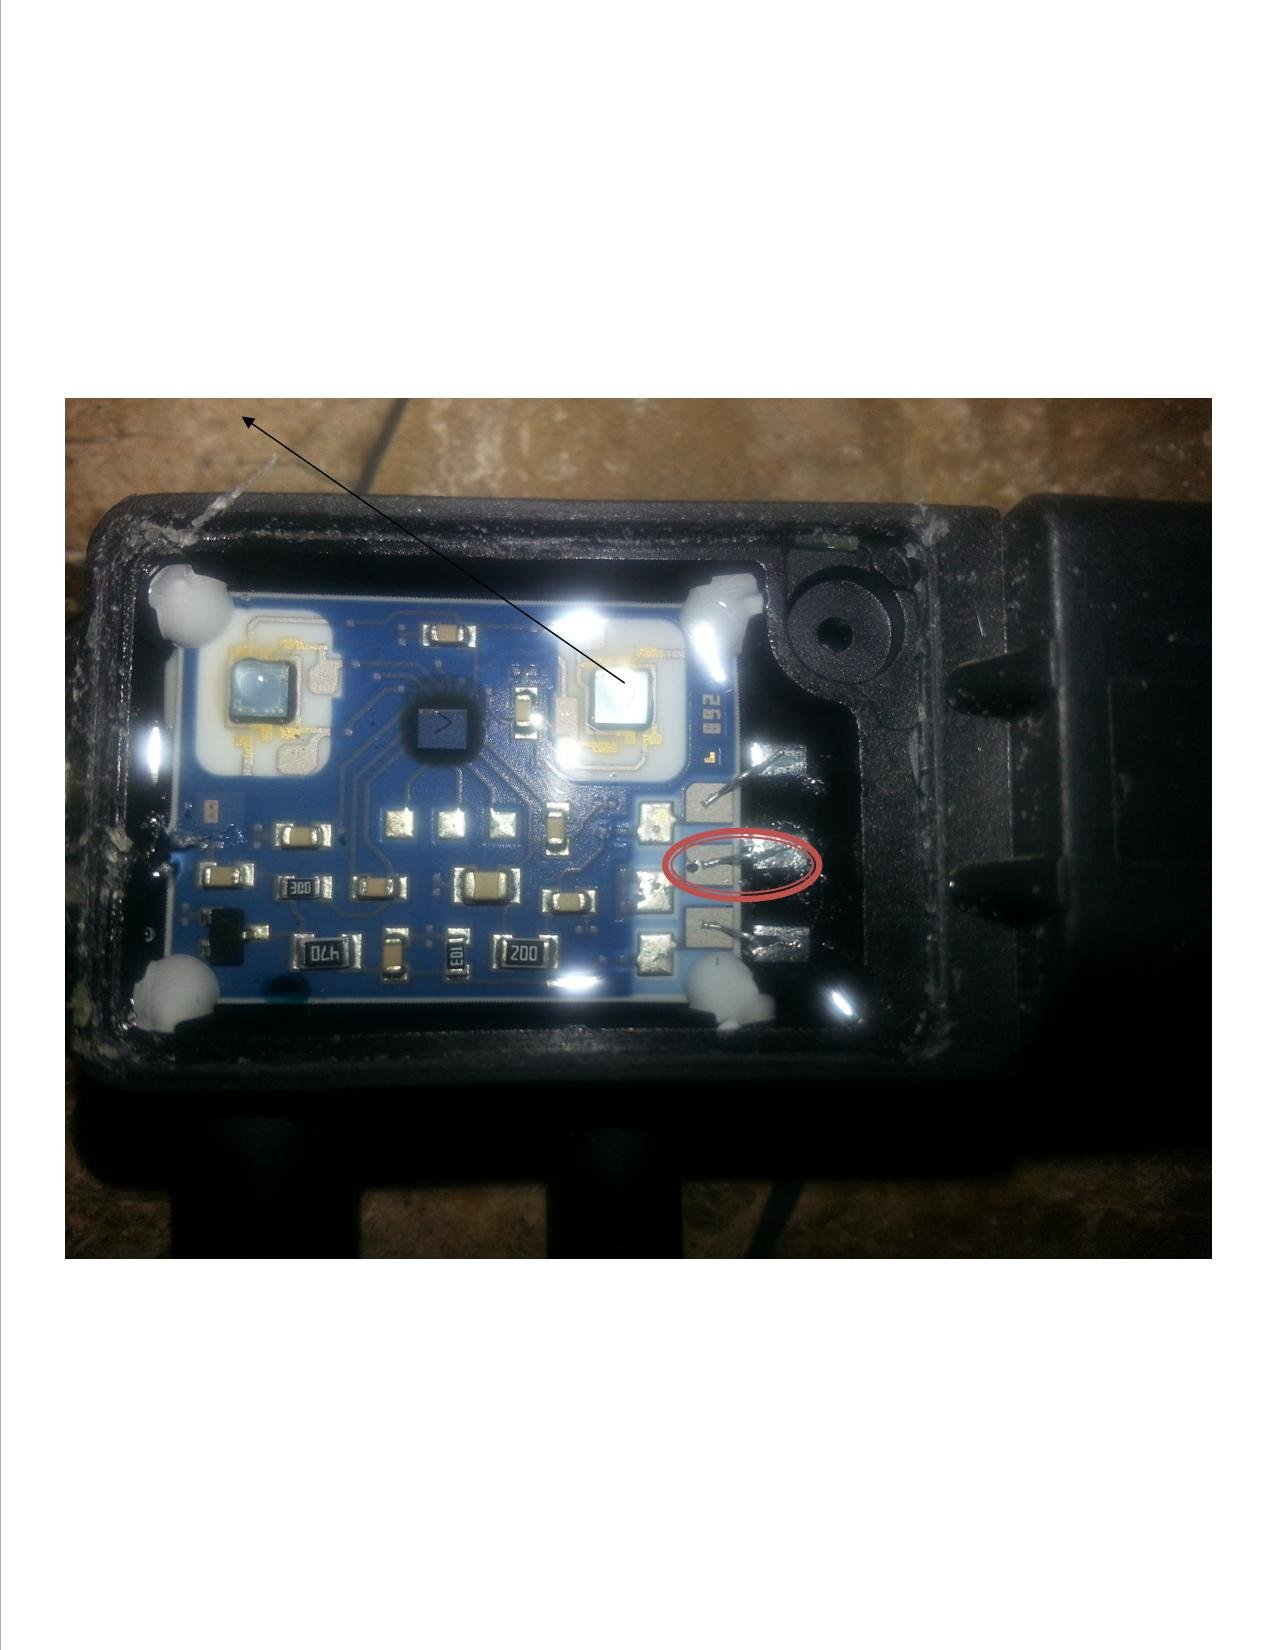 2009 Jetta TDI with multiple P codes MIL light on G451